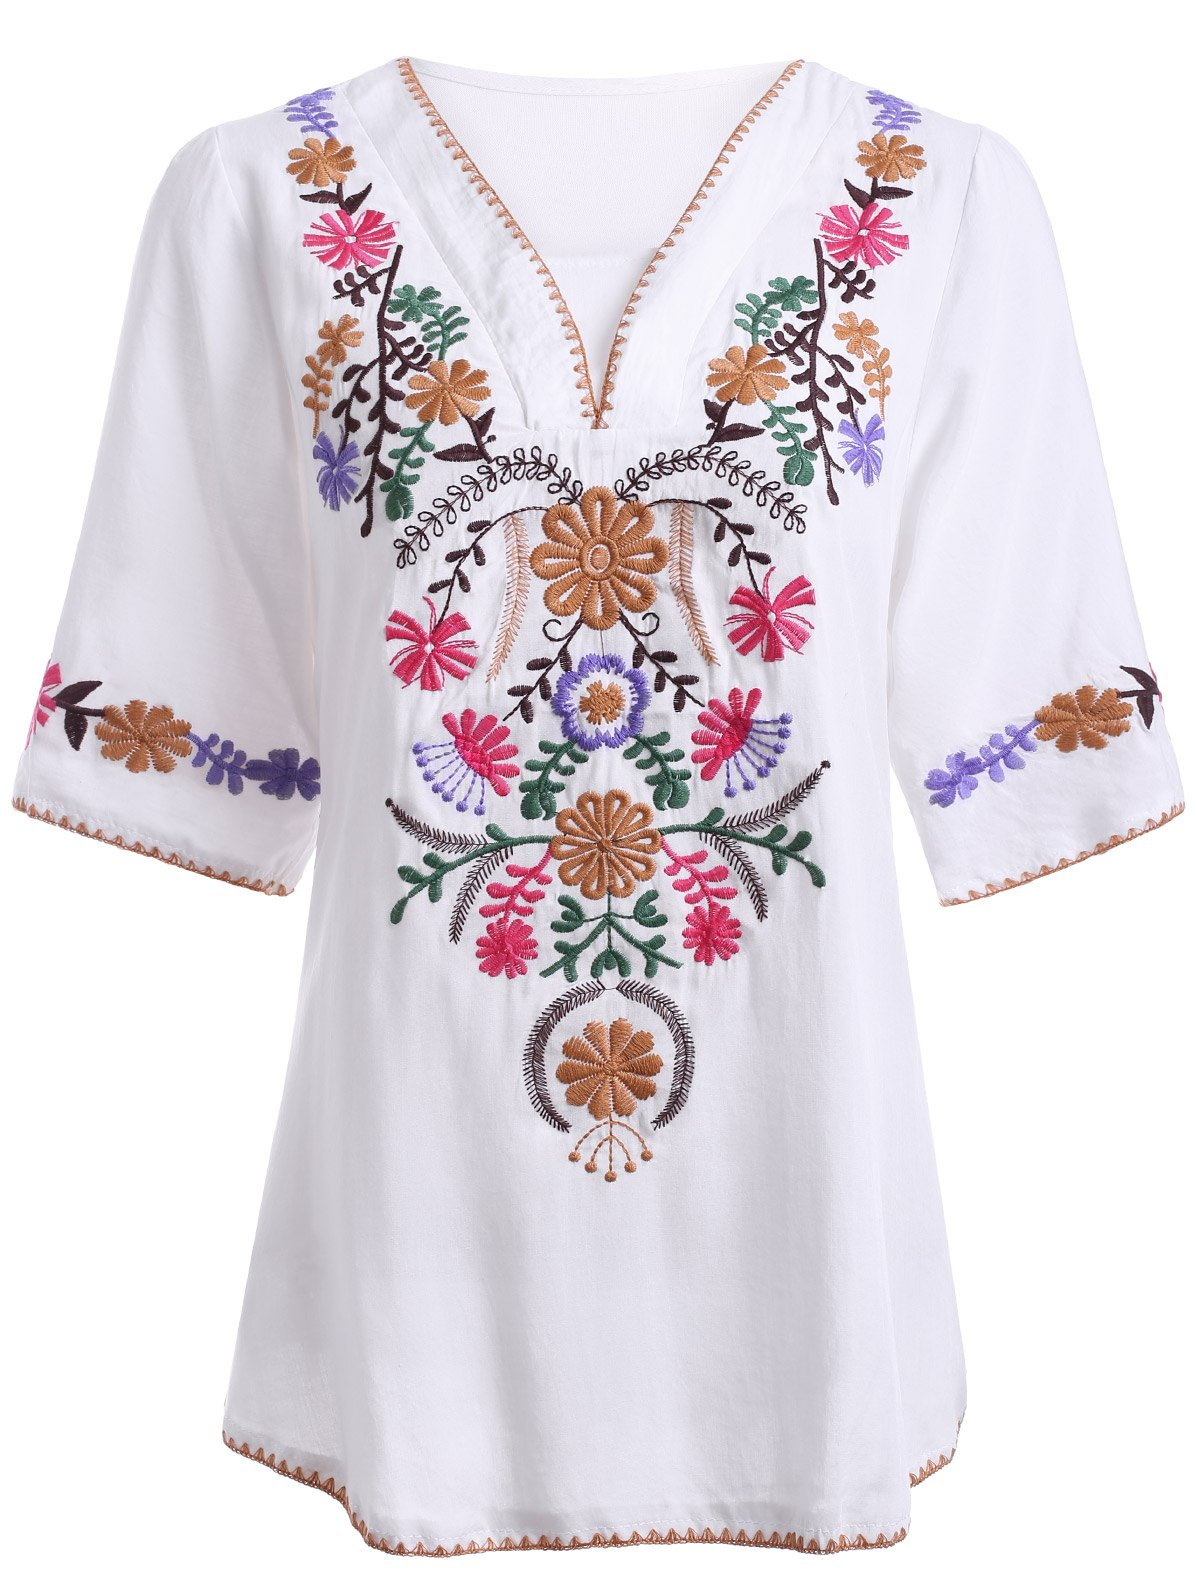 Ethnic Style Women's V Neck Embroidery 3/4 Sleeve Blouse - WHITE ONE SIZE(FIT SIZE XS TO M)